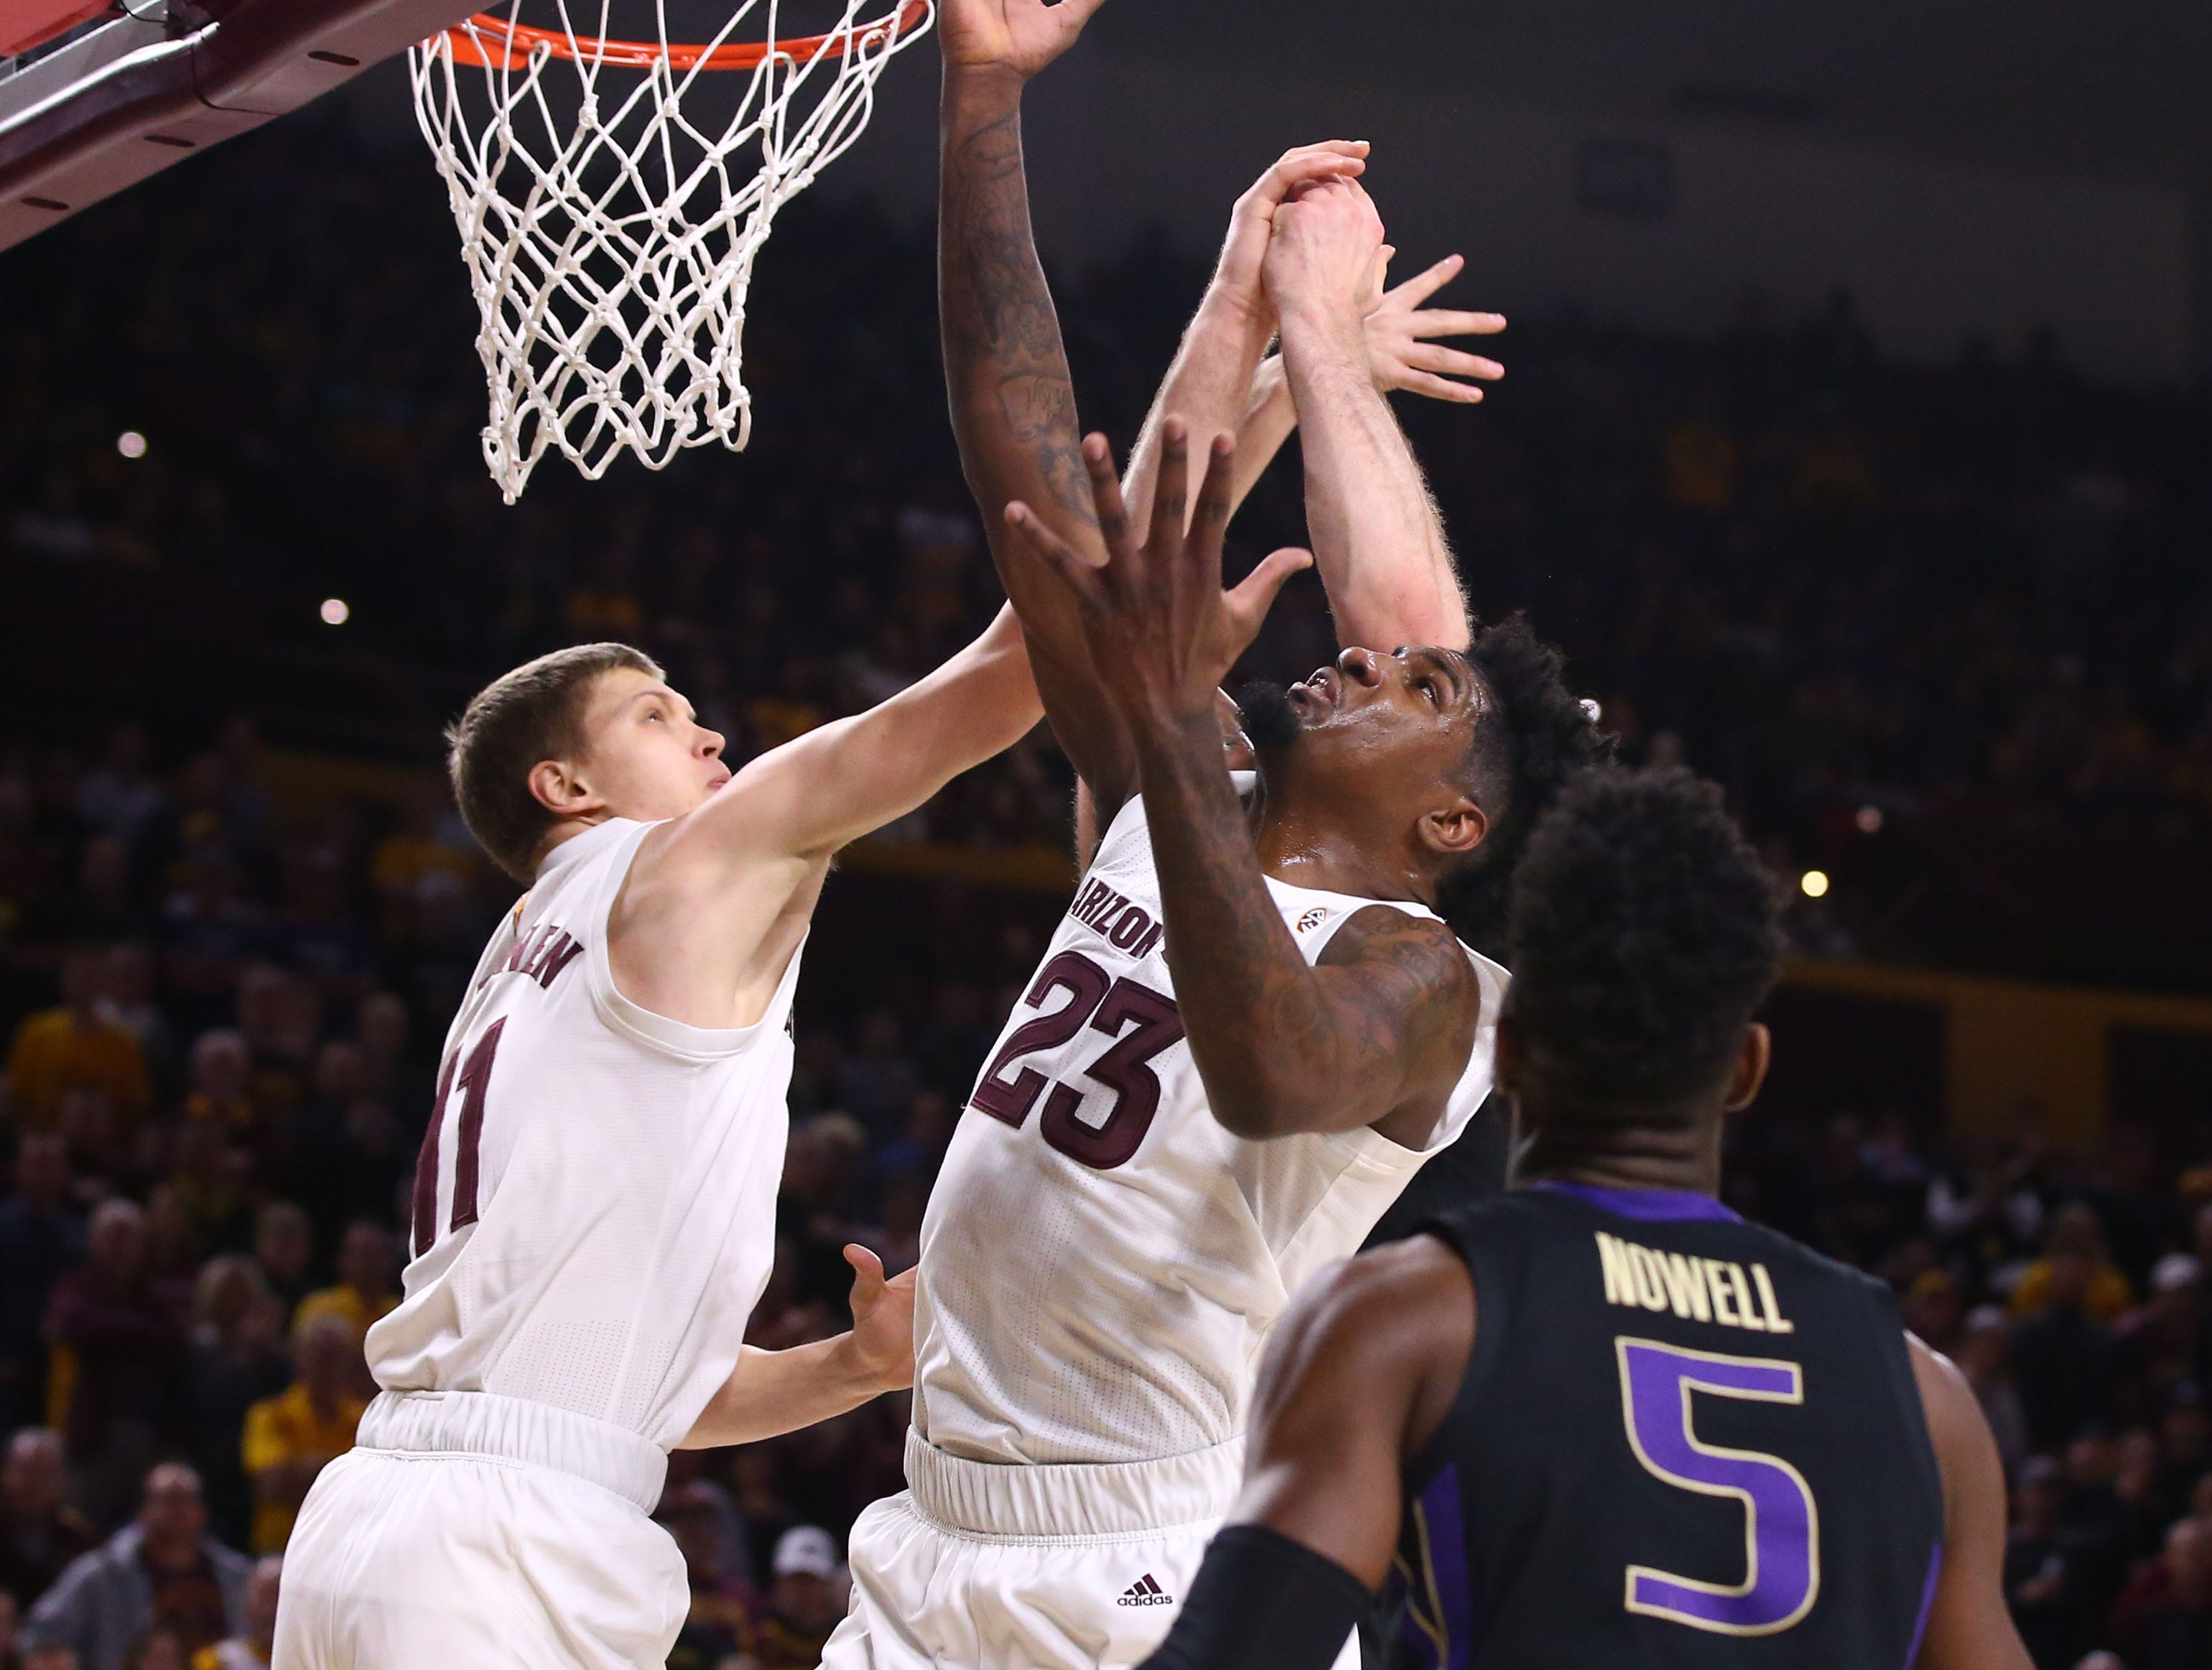 Arizona State Sun Devils forward Romello White (23) battles for the rebound against the Washington Huskies in the first half on Feb. 9 at Wells Fargo Arena in Tempe.